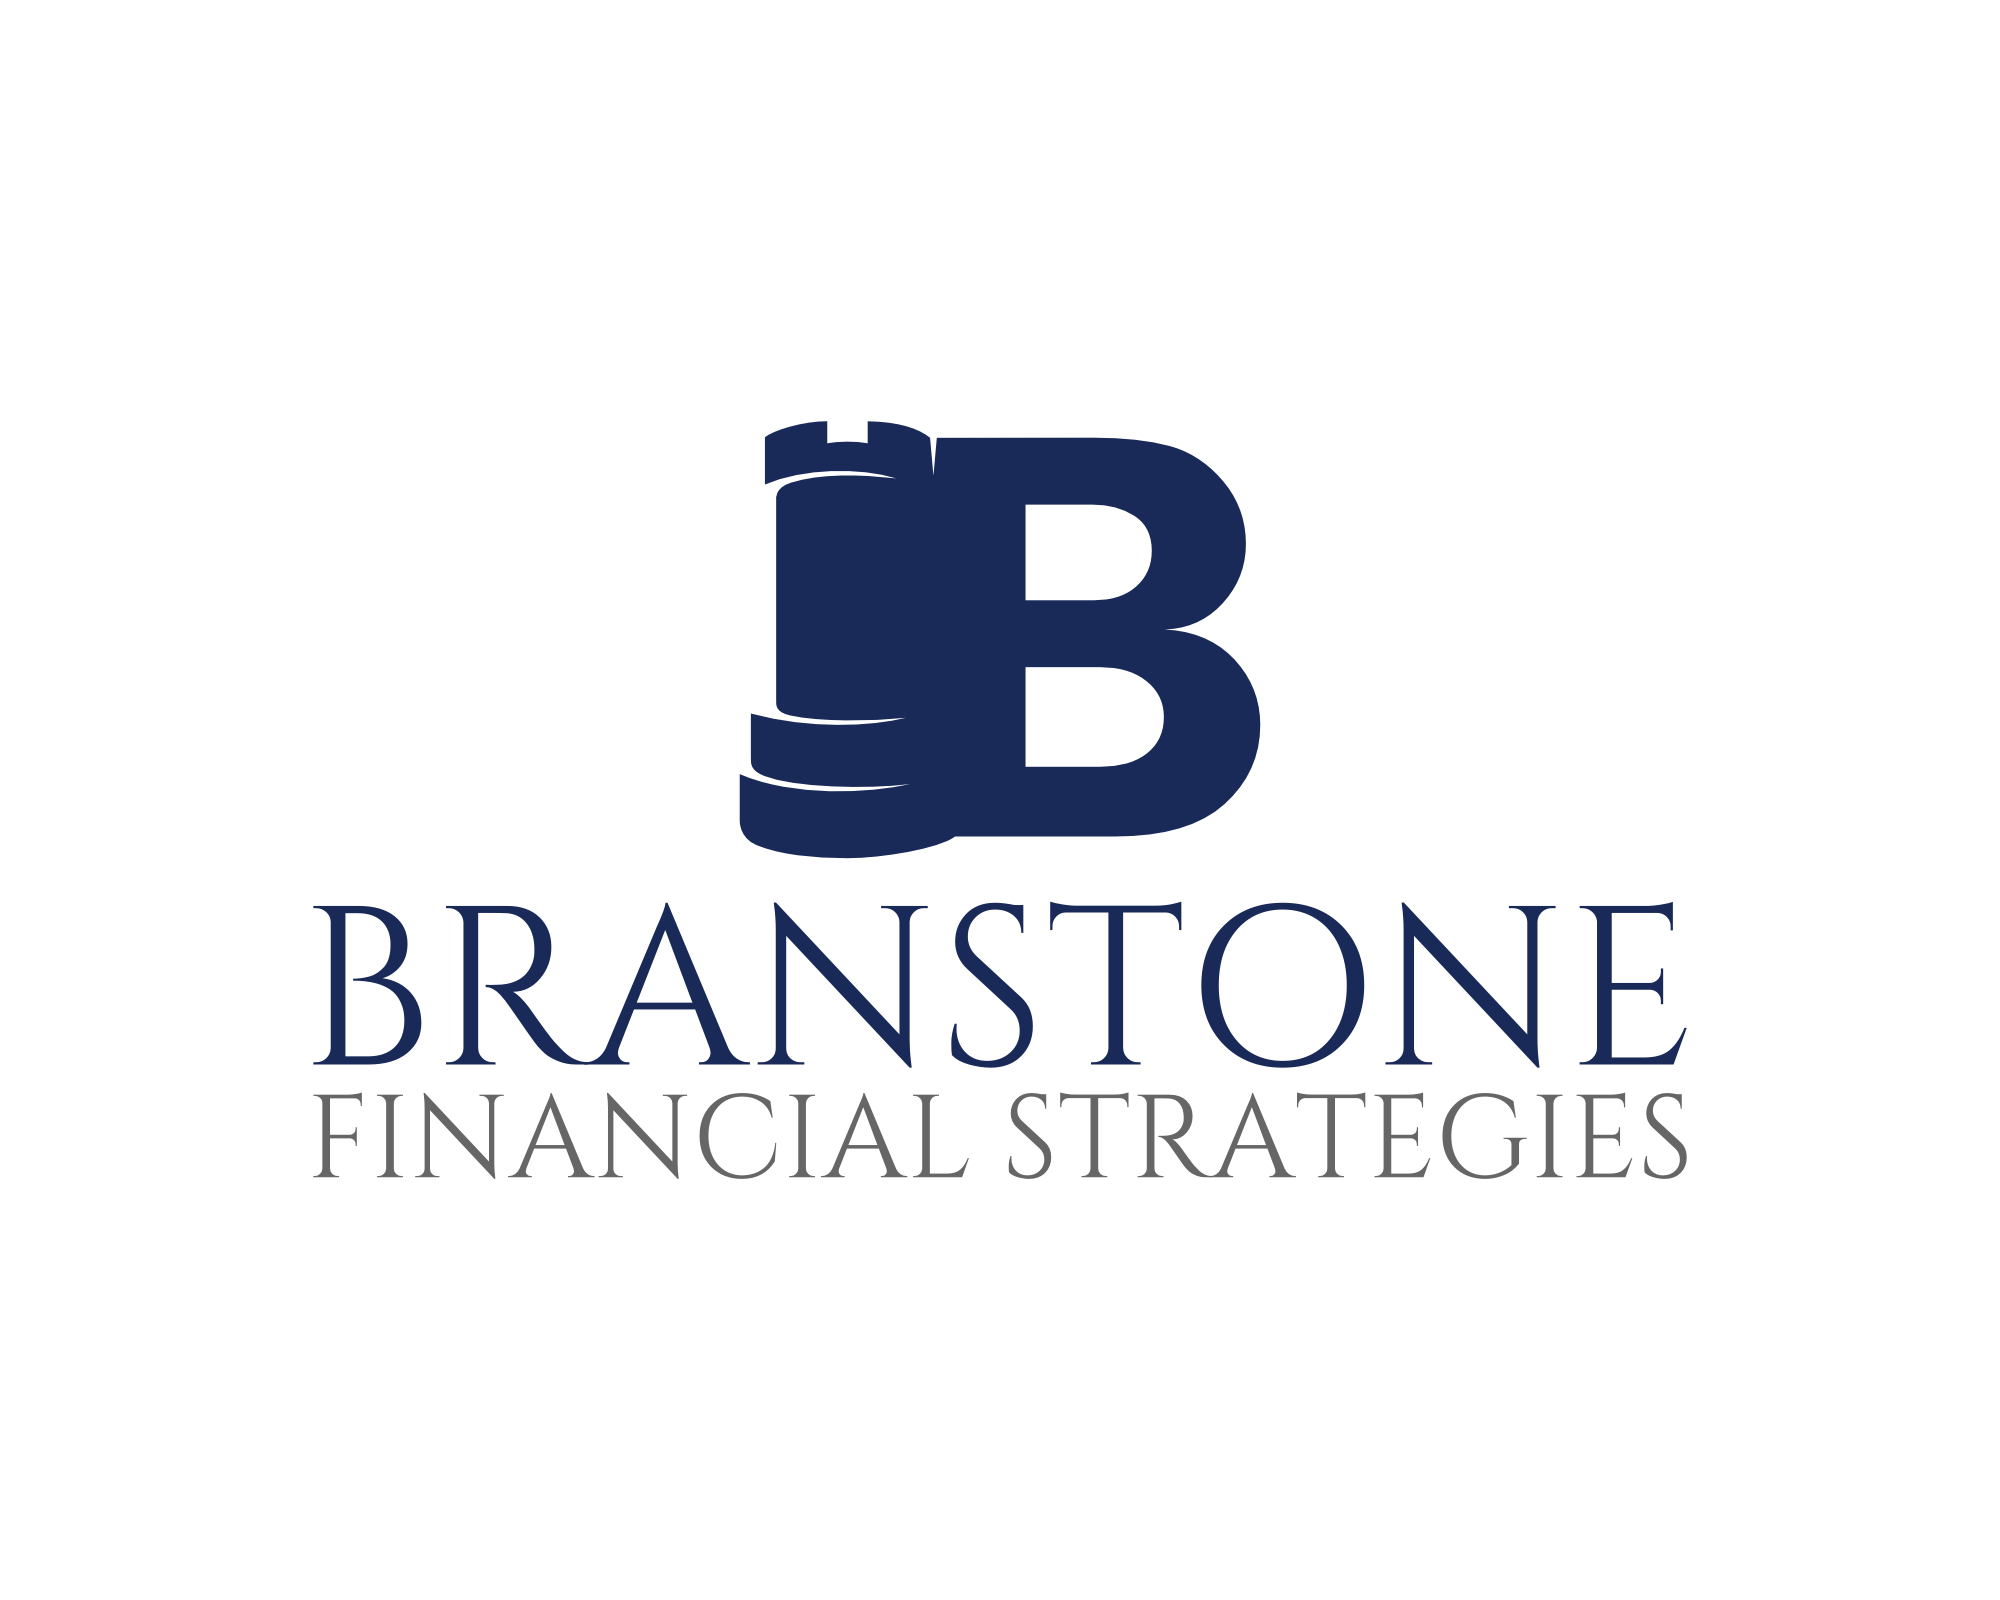 Logo Design by explogos - Entry No. 348 in the Logo Design Contest Inspiring Logo Design for Branstone Financial Strategies.